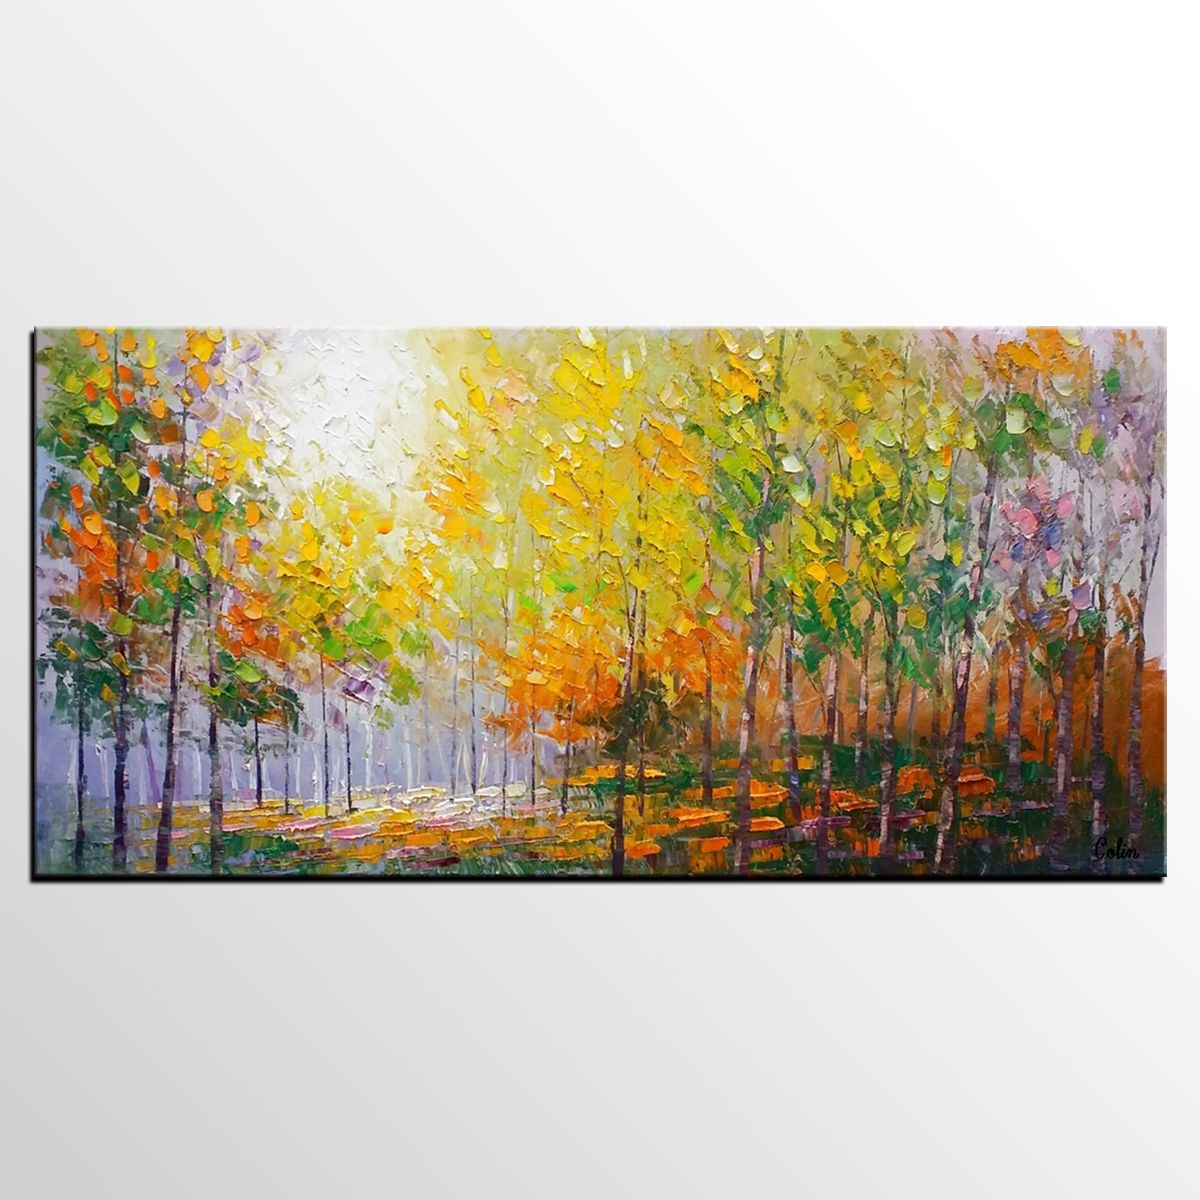 Living Room Wall Art, Landscape Painting, Oil Painting, Abstract ...